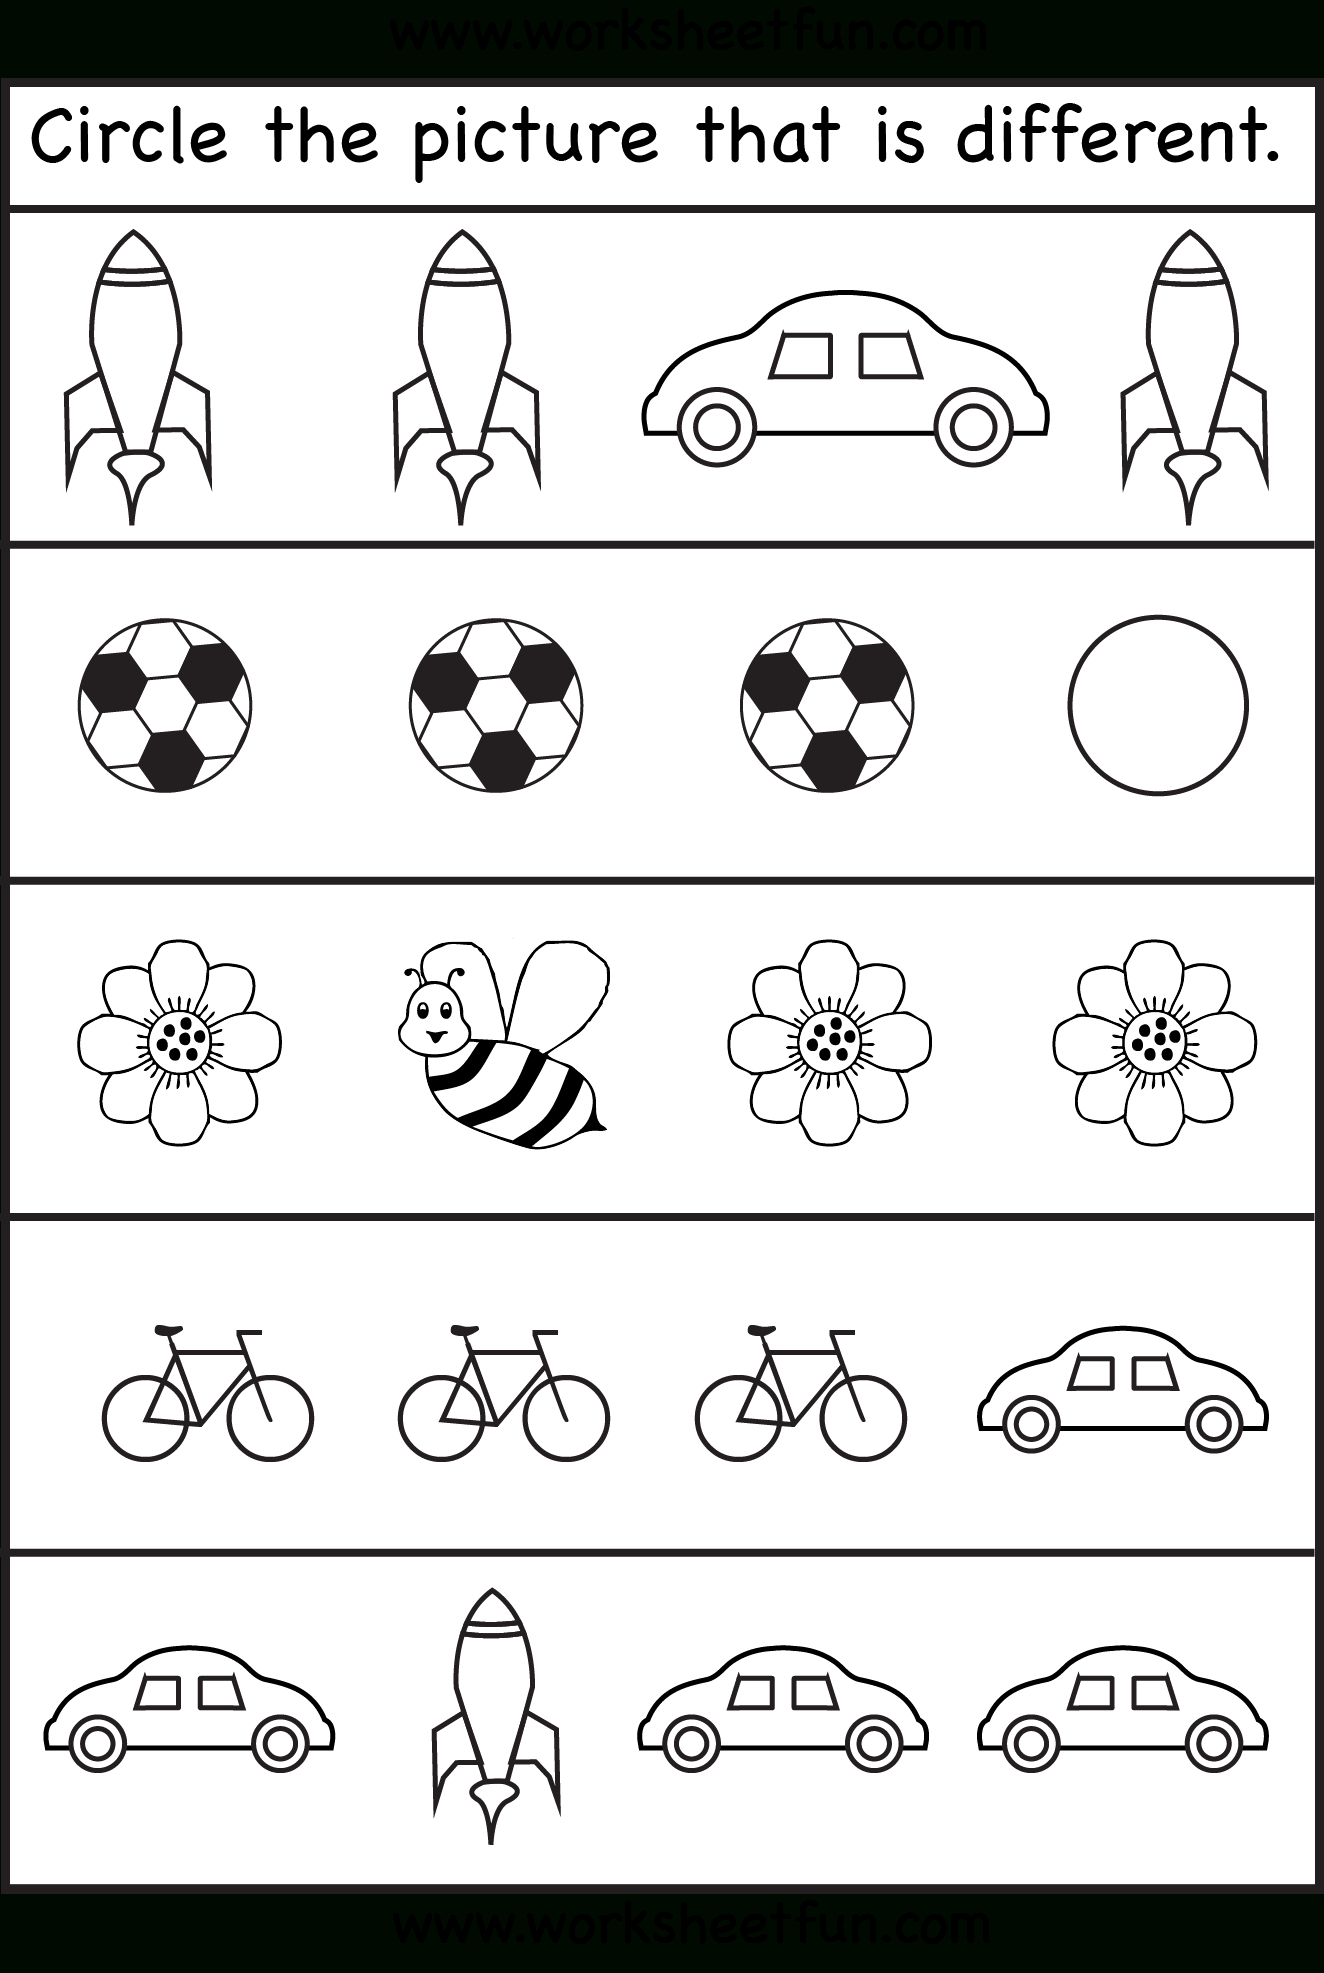 Circle The Picture That Is Different - 4 Worksheets | Preschool Work - Free Printable Same And Different Worksheets